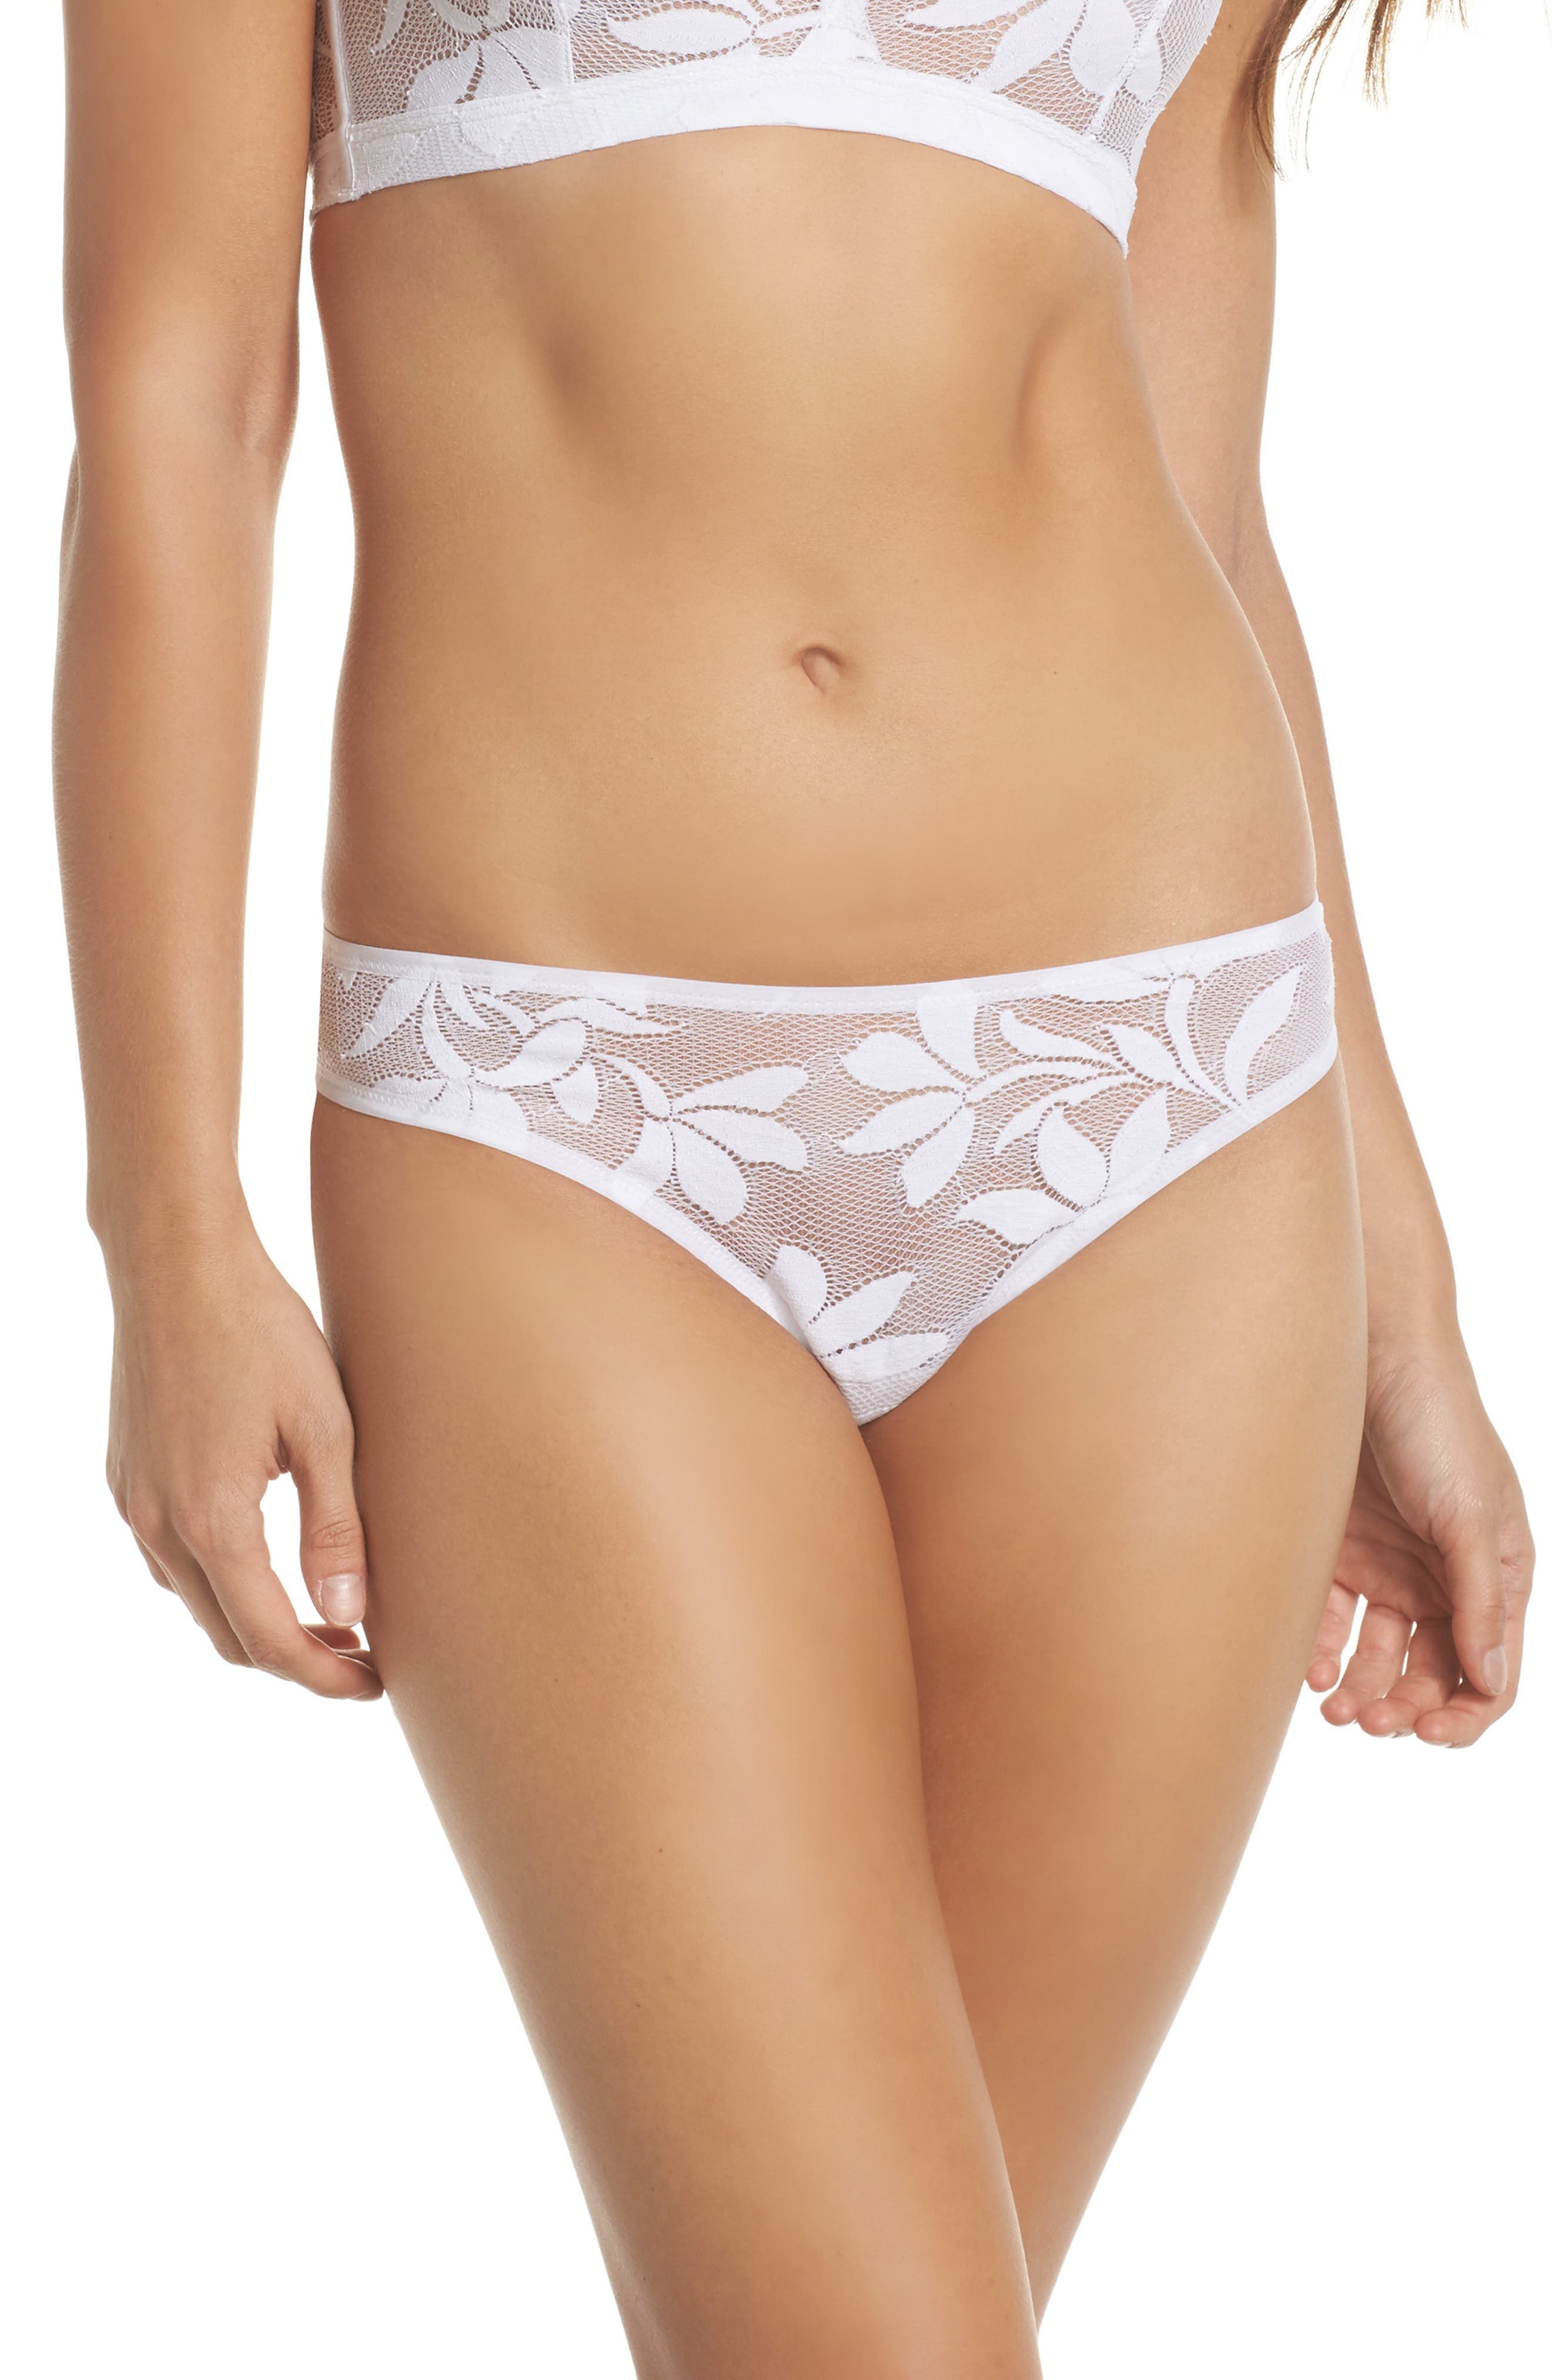 Dentelle Tulipes Thong,                         Main,                         color, Blanc